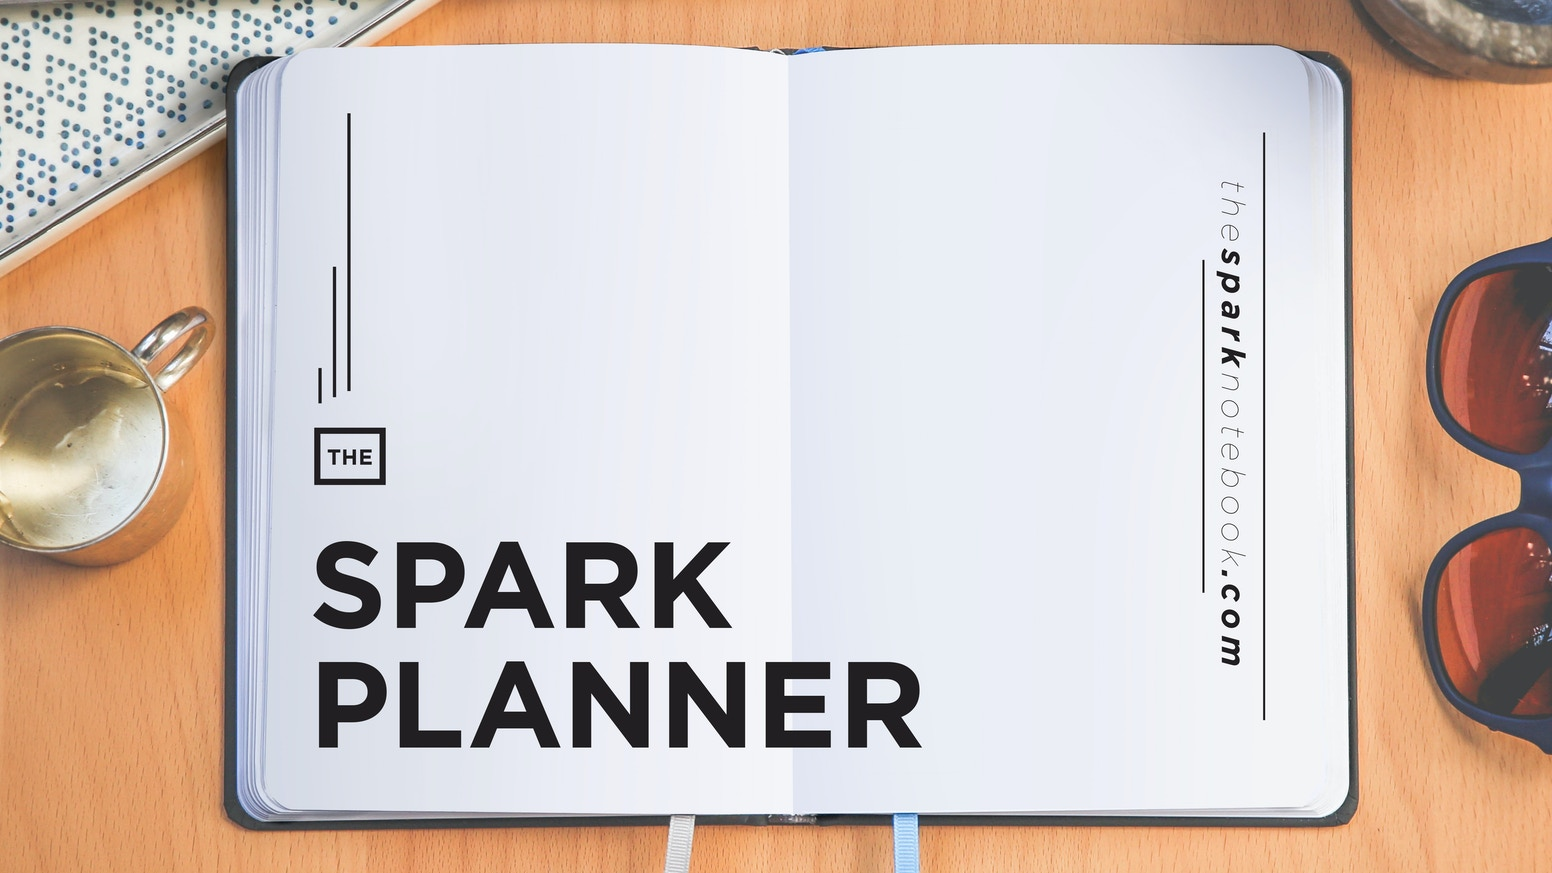 the spark planner achieve all your goals in 2016 by kate